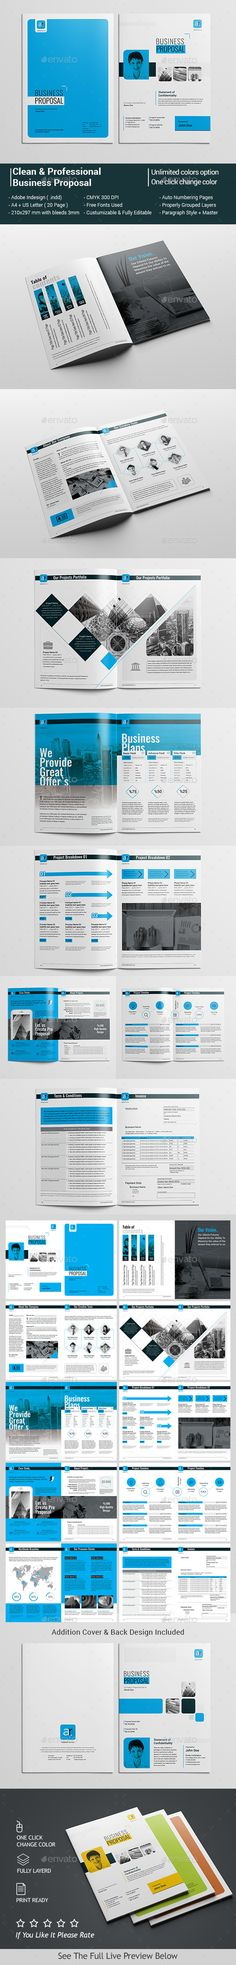 print design mix Magazine  Layout  Graphic Design Pinterest